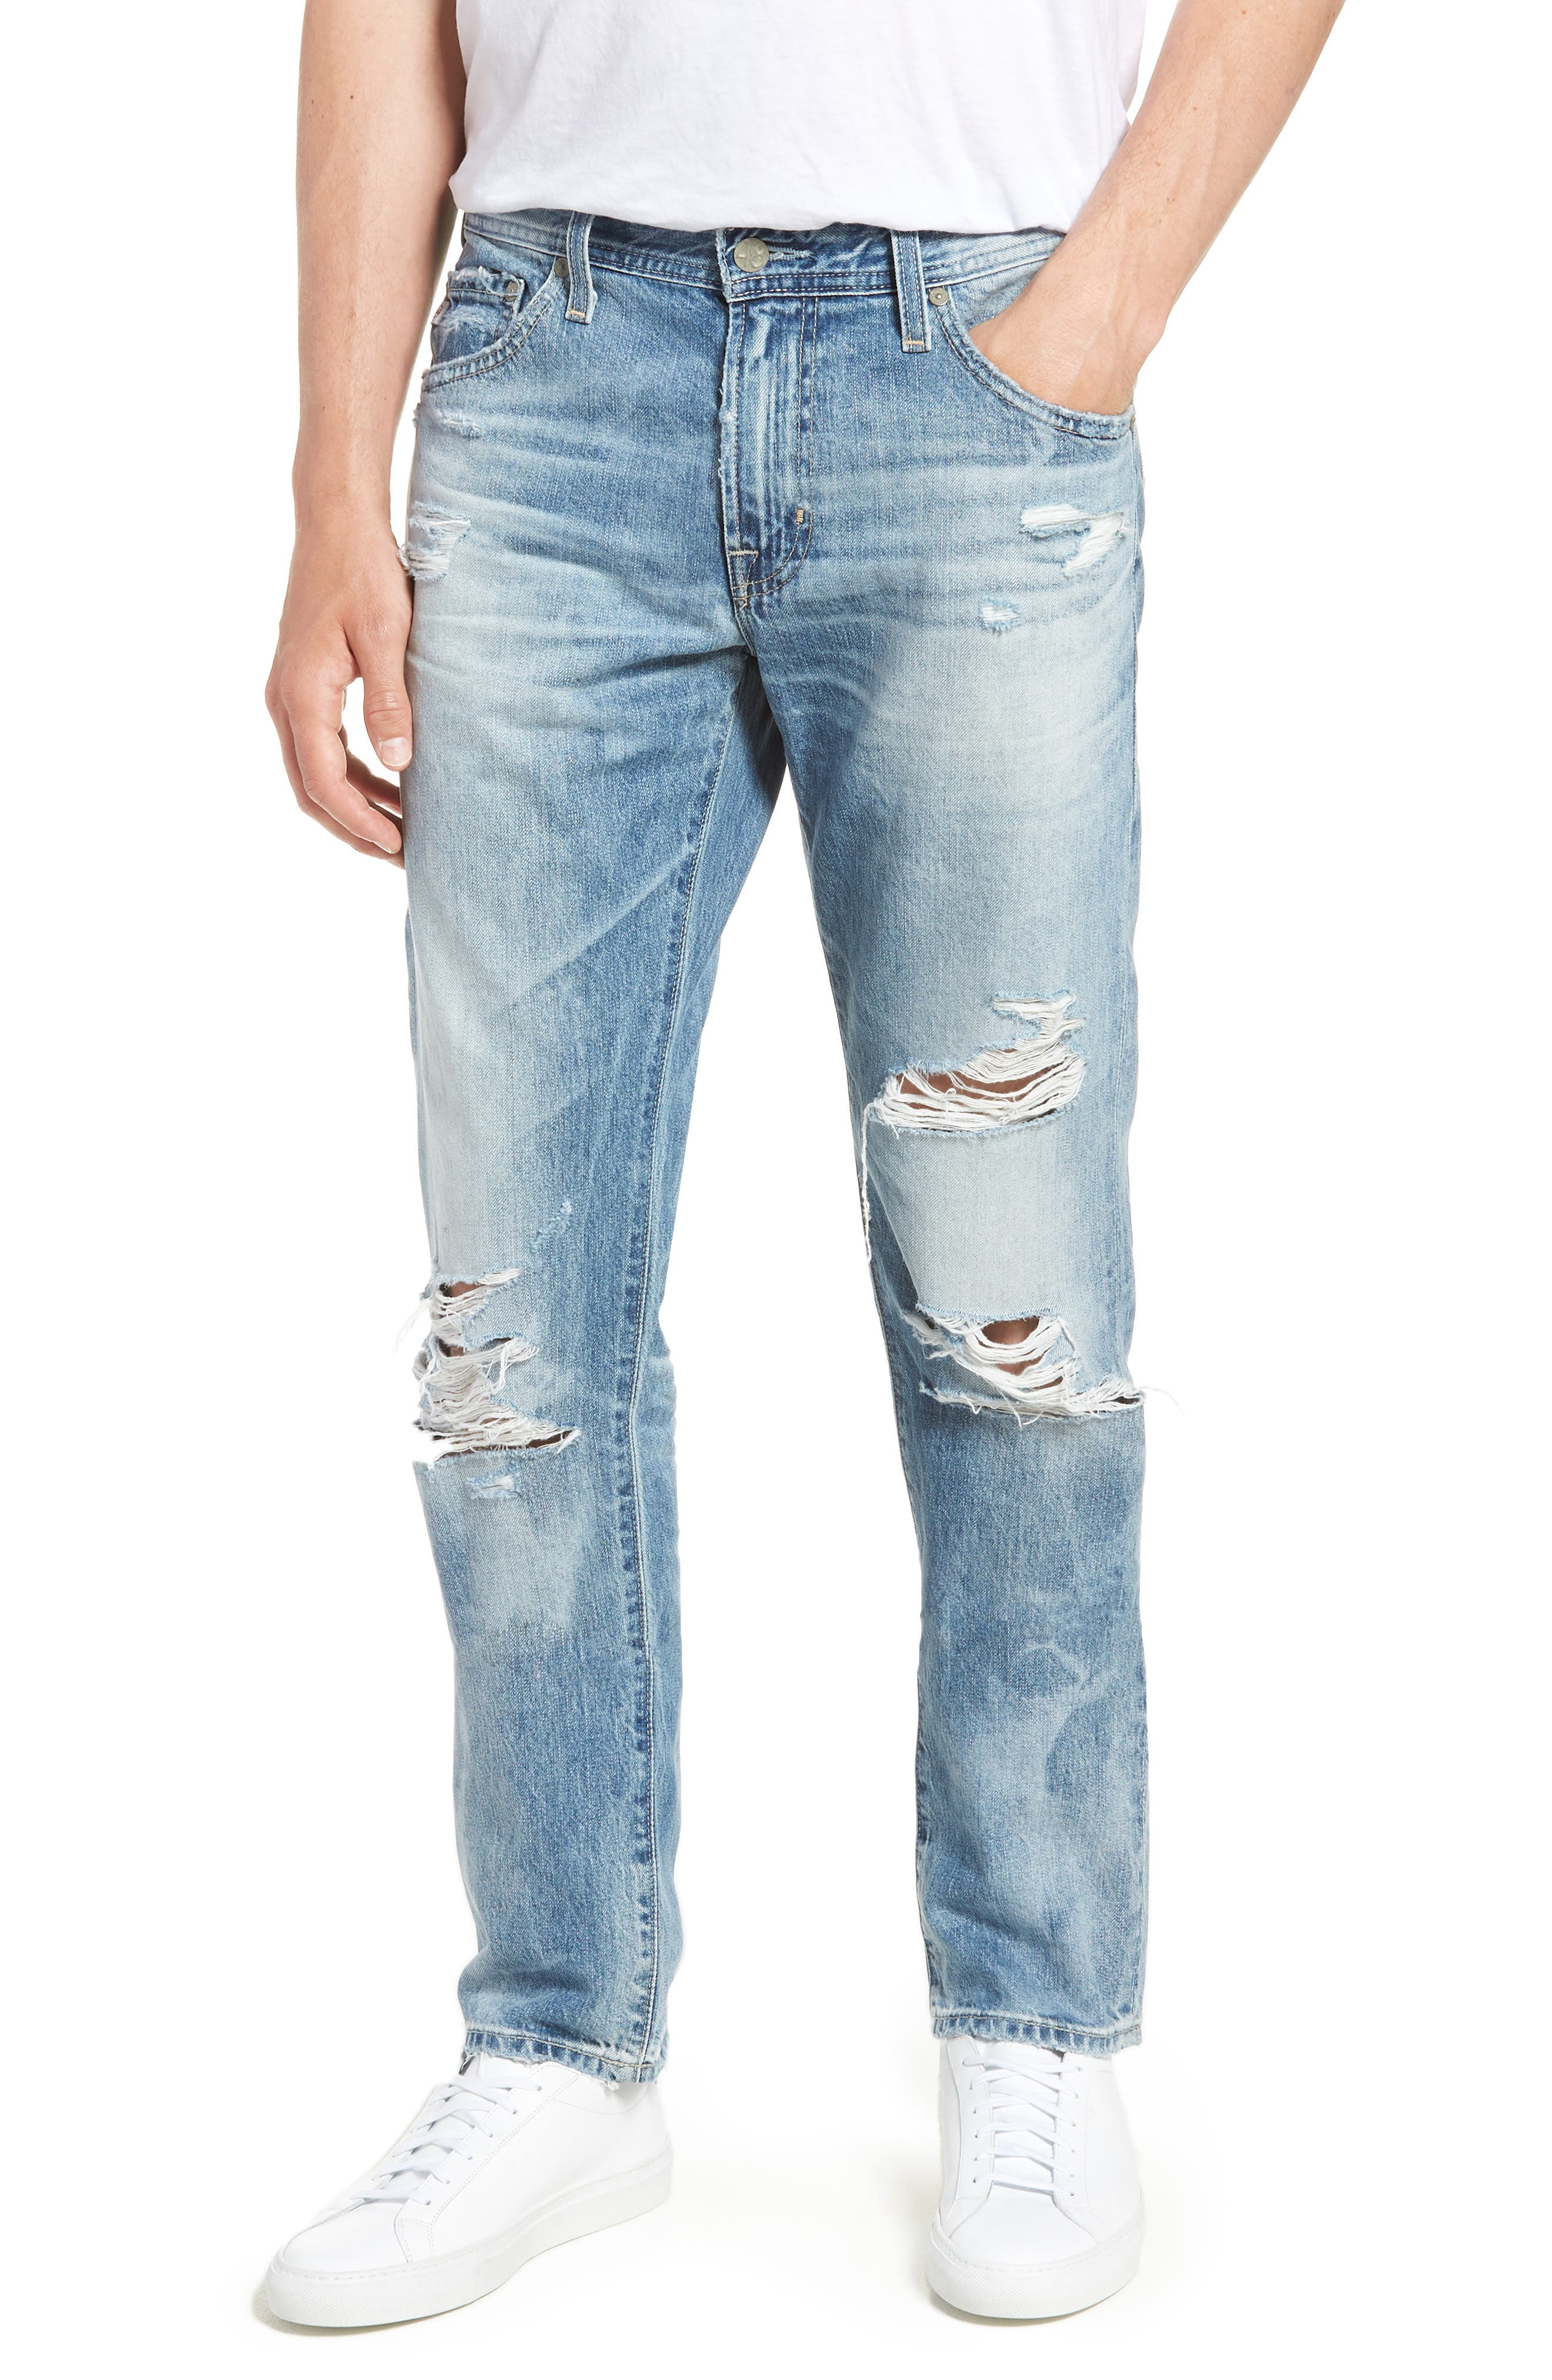 Tellis Slim Fit Jeans,                             Main thumbnail 1, color,                             23 Years Shearwater